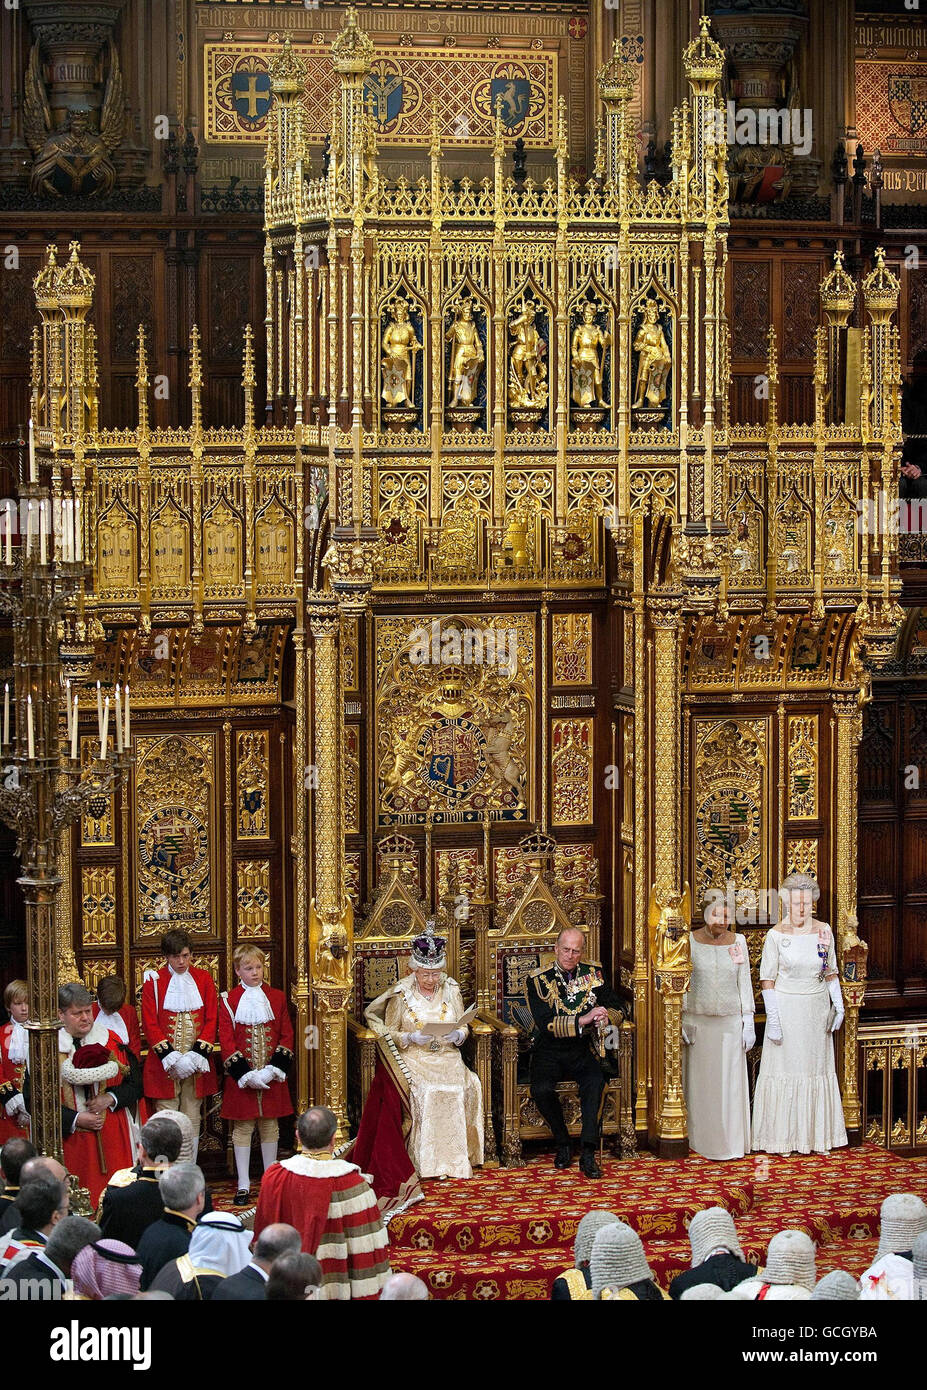 Customs and Traditions - State Opening of Parliament - London - Stock Image